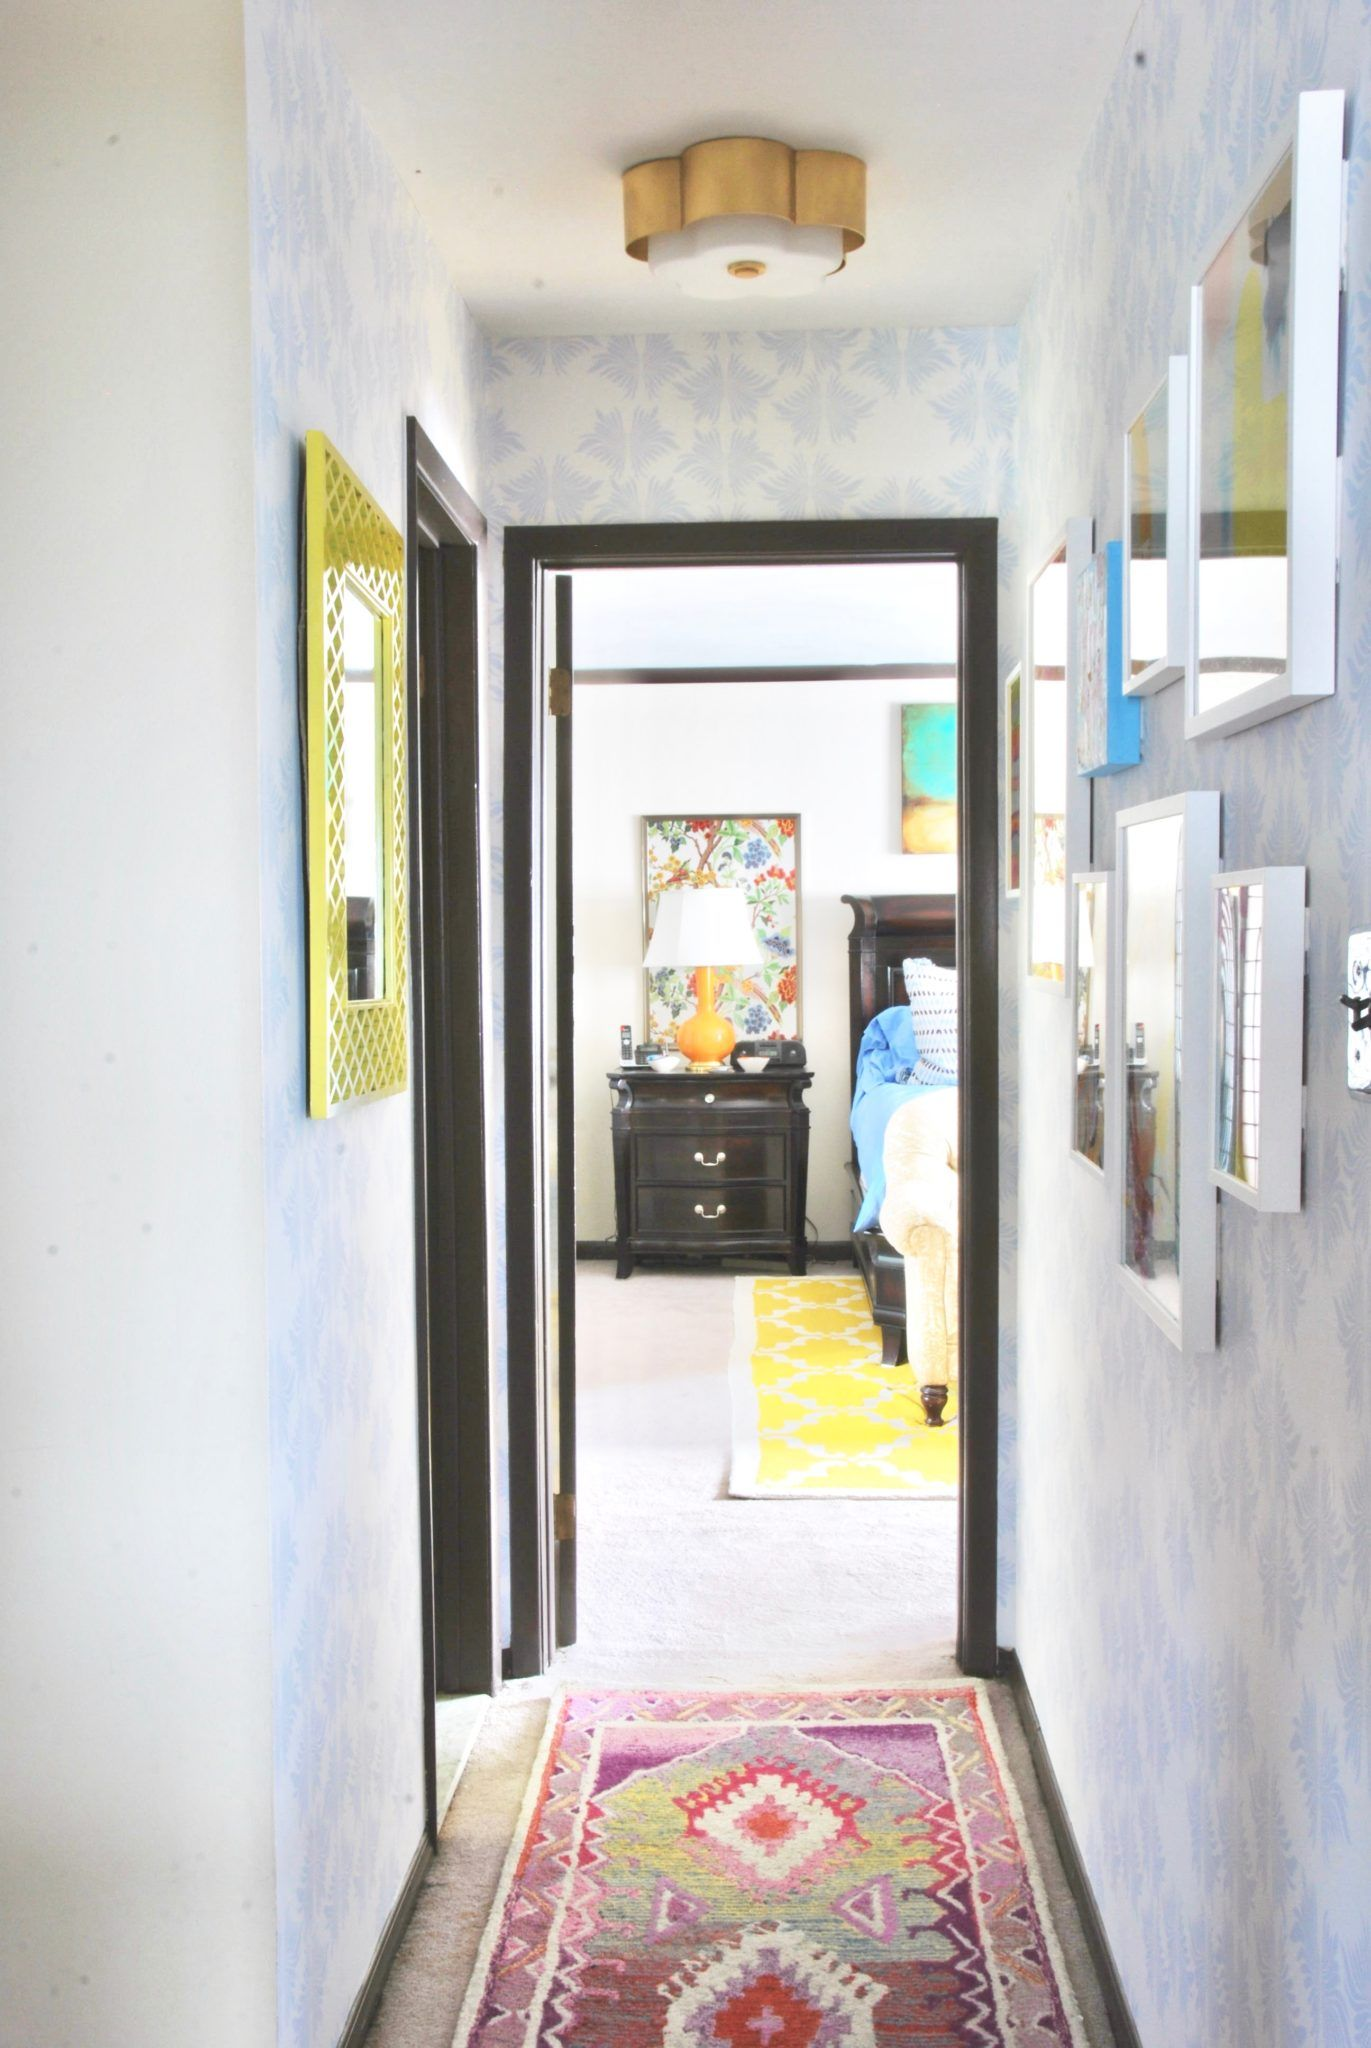 The Easiest Way to Install Removable Wallpaper Removable